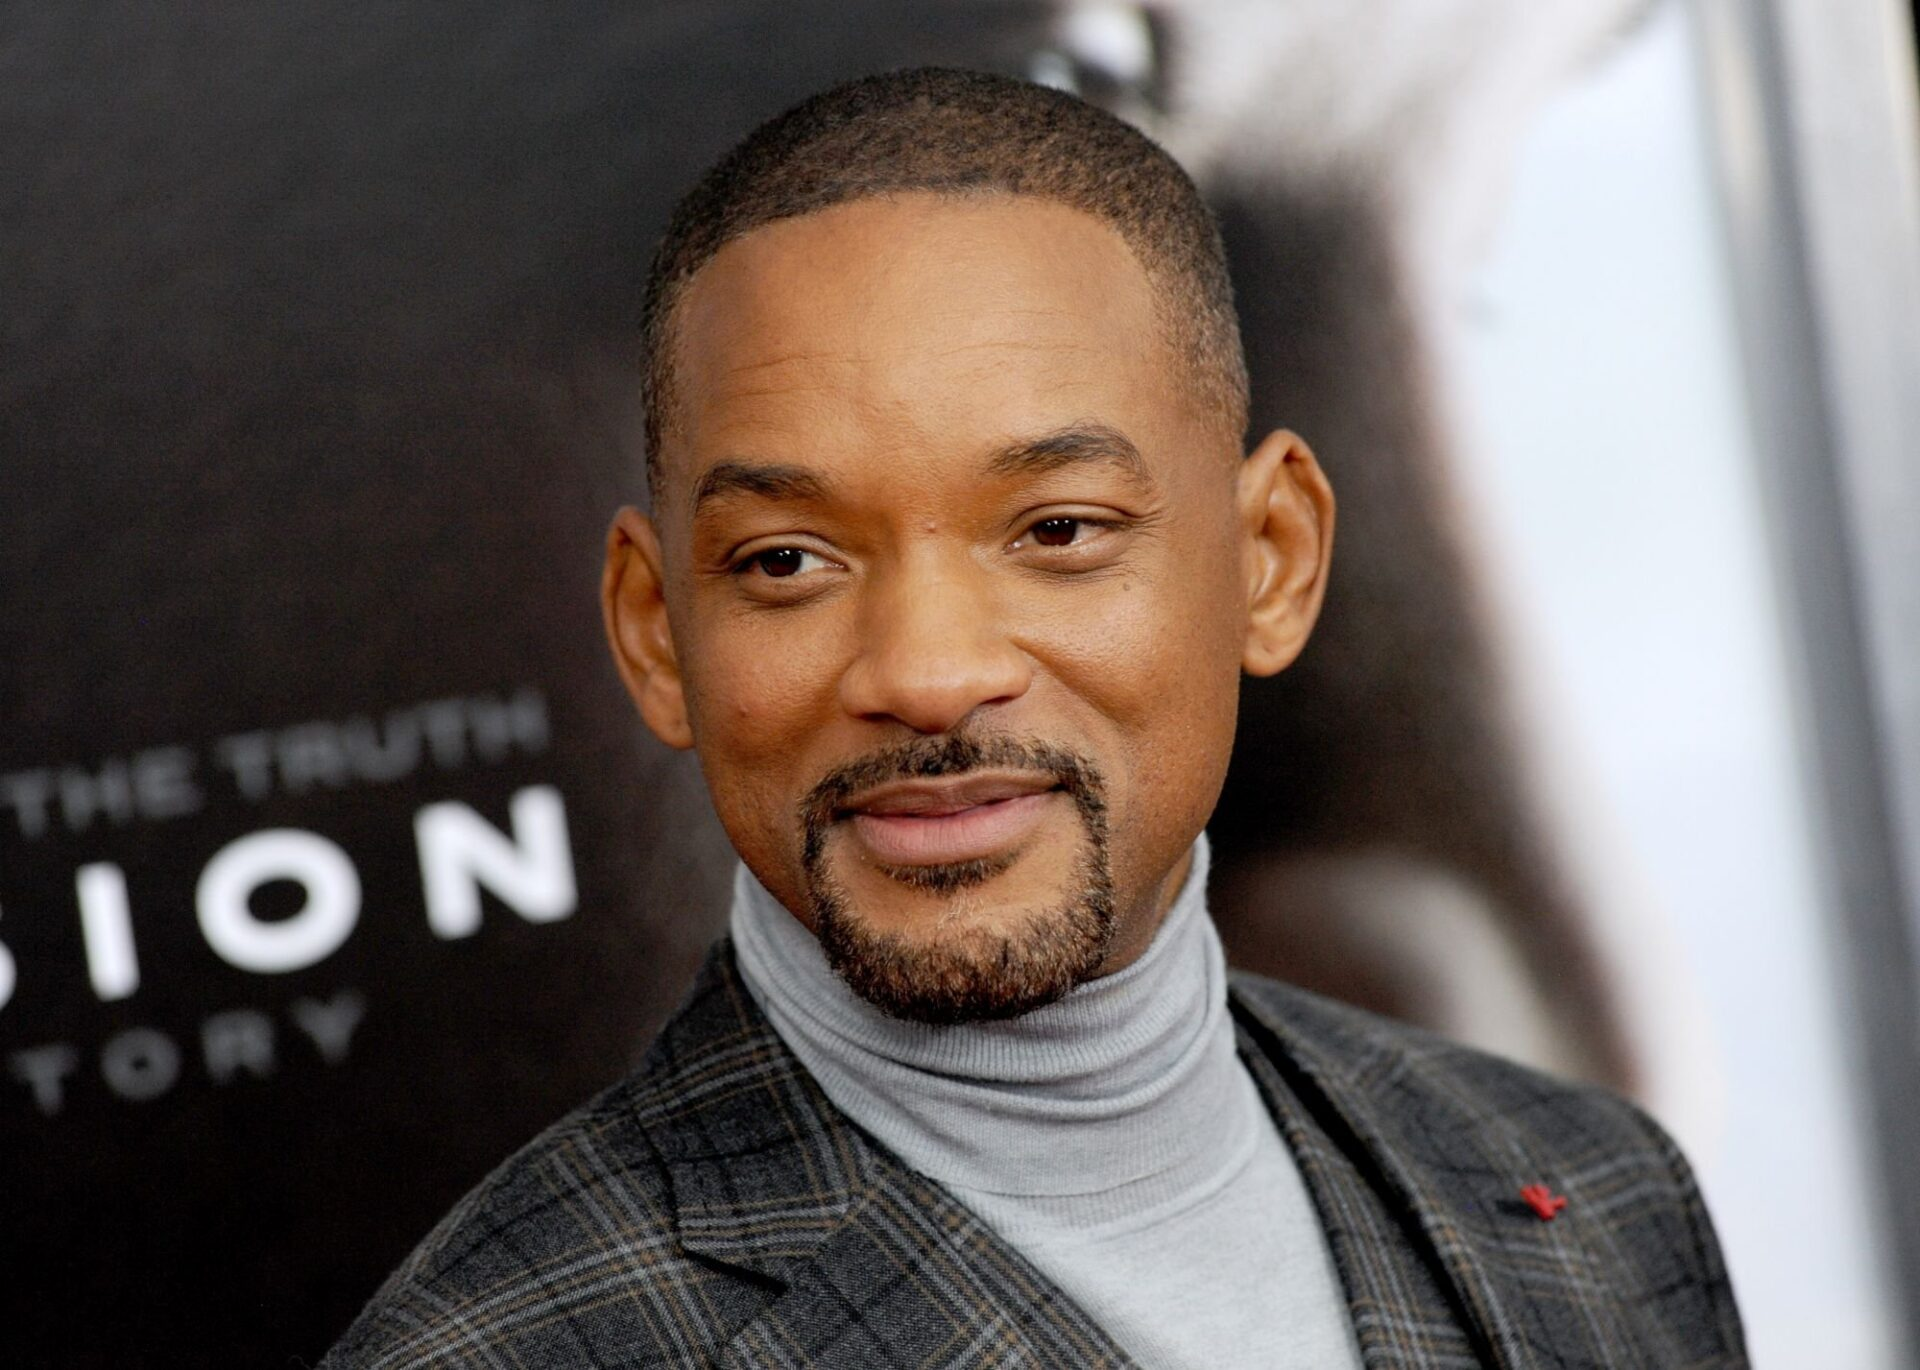 Will Smith films et émissions arriveront en 2021.